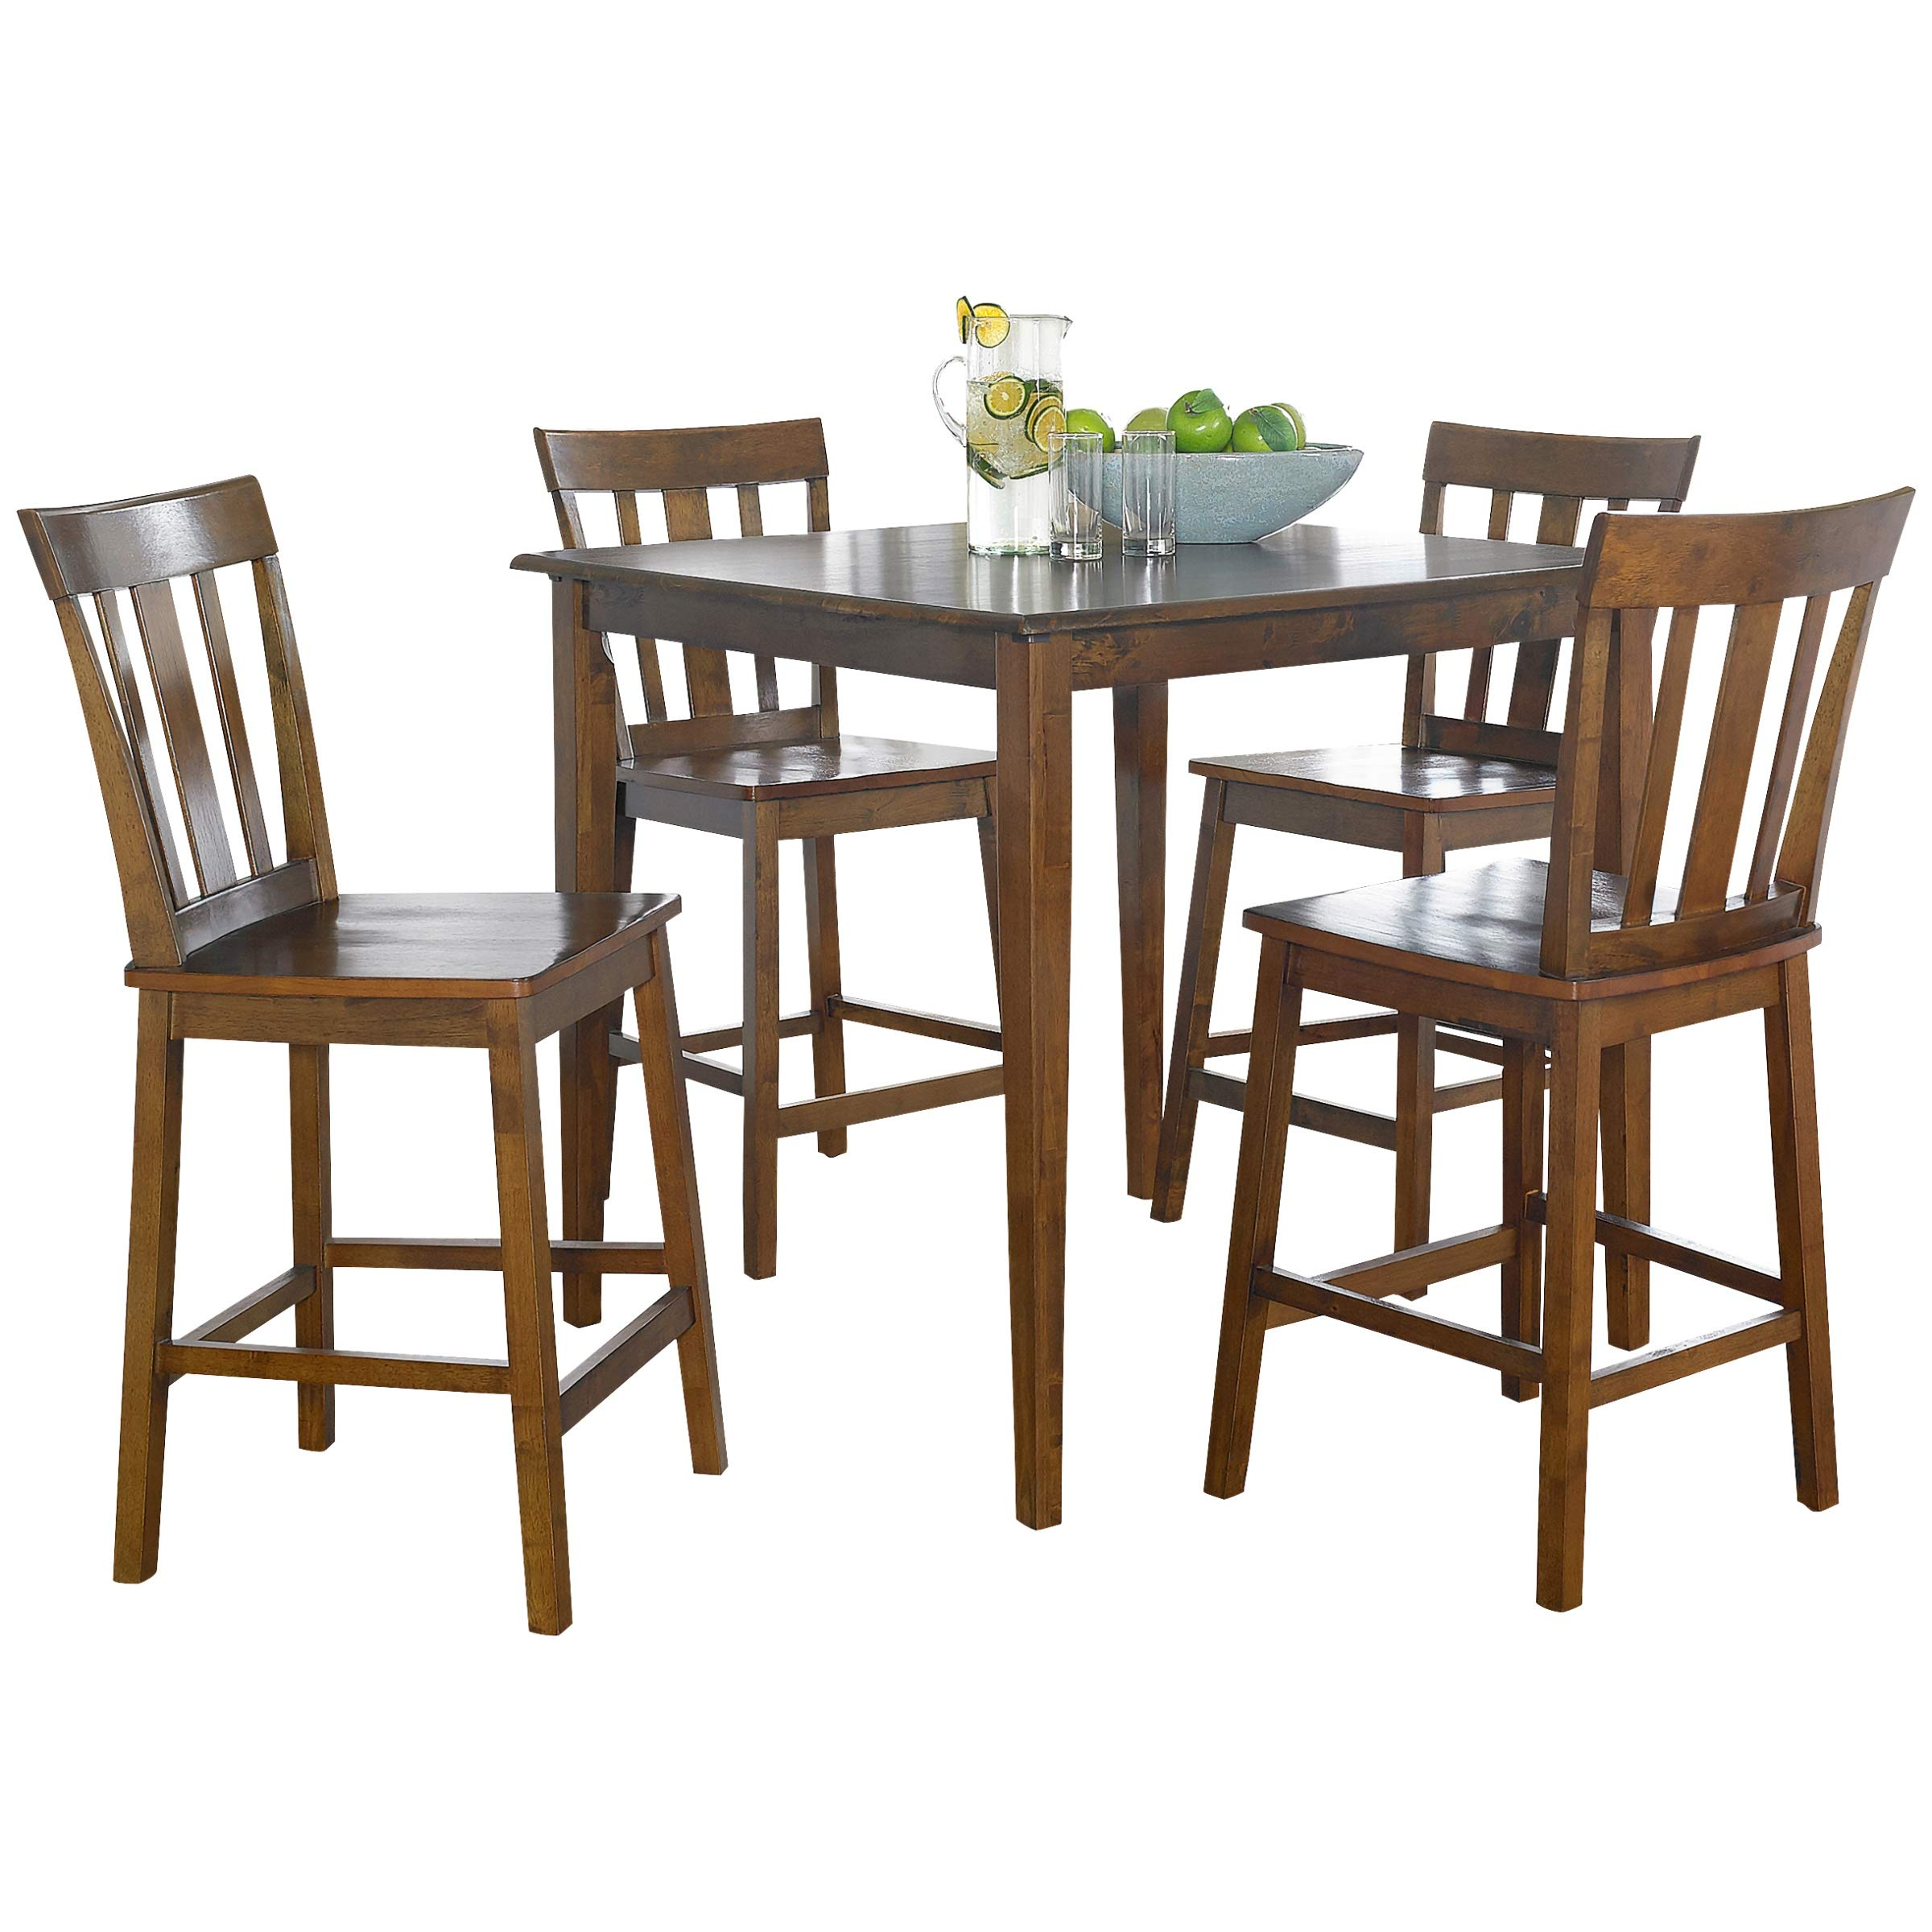 Mainstay 5-Piece Counter Height Dining Set in Cherry Finish + Free Multi-Surface Furniture Polish